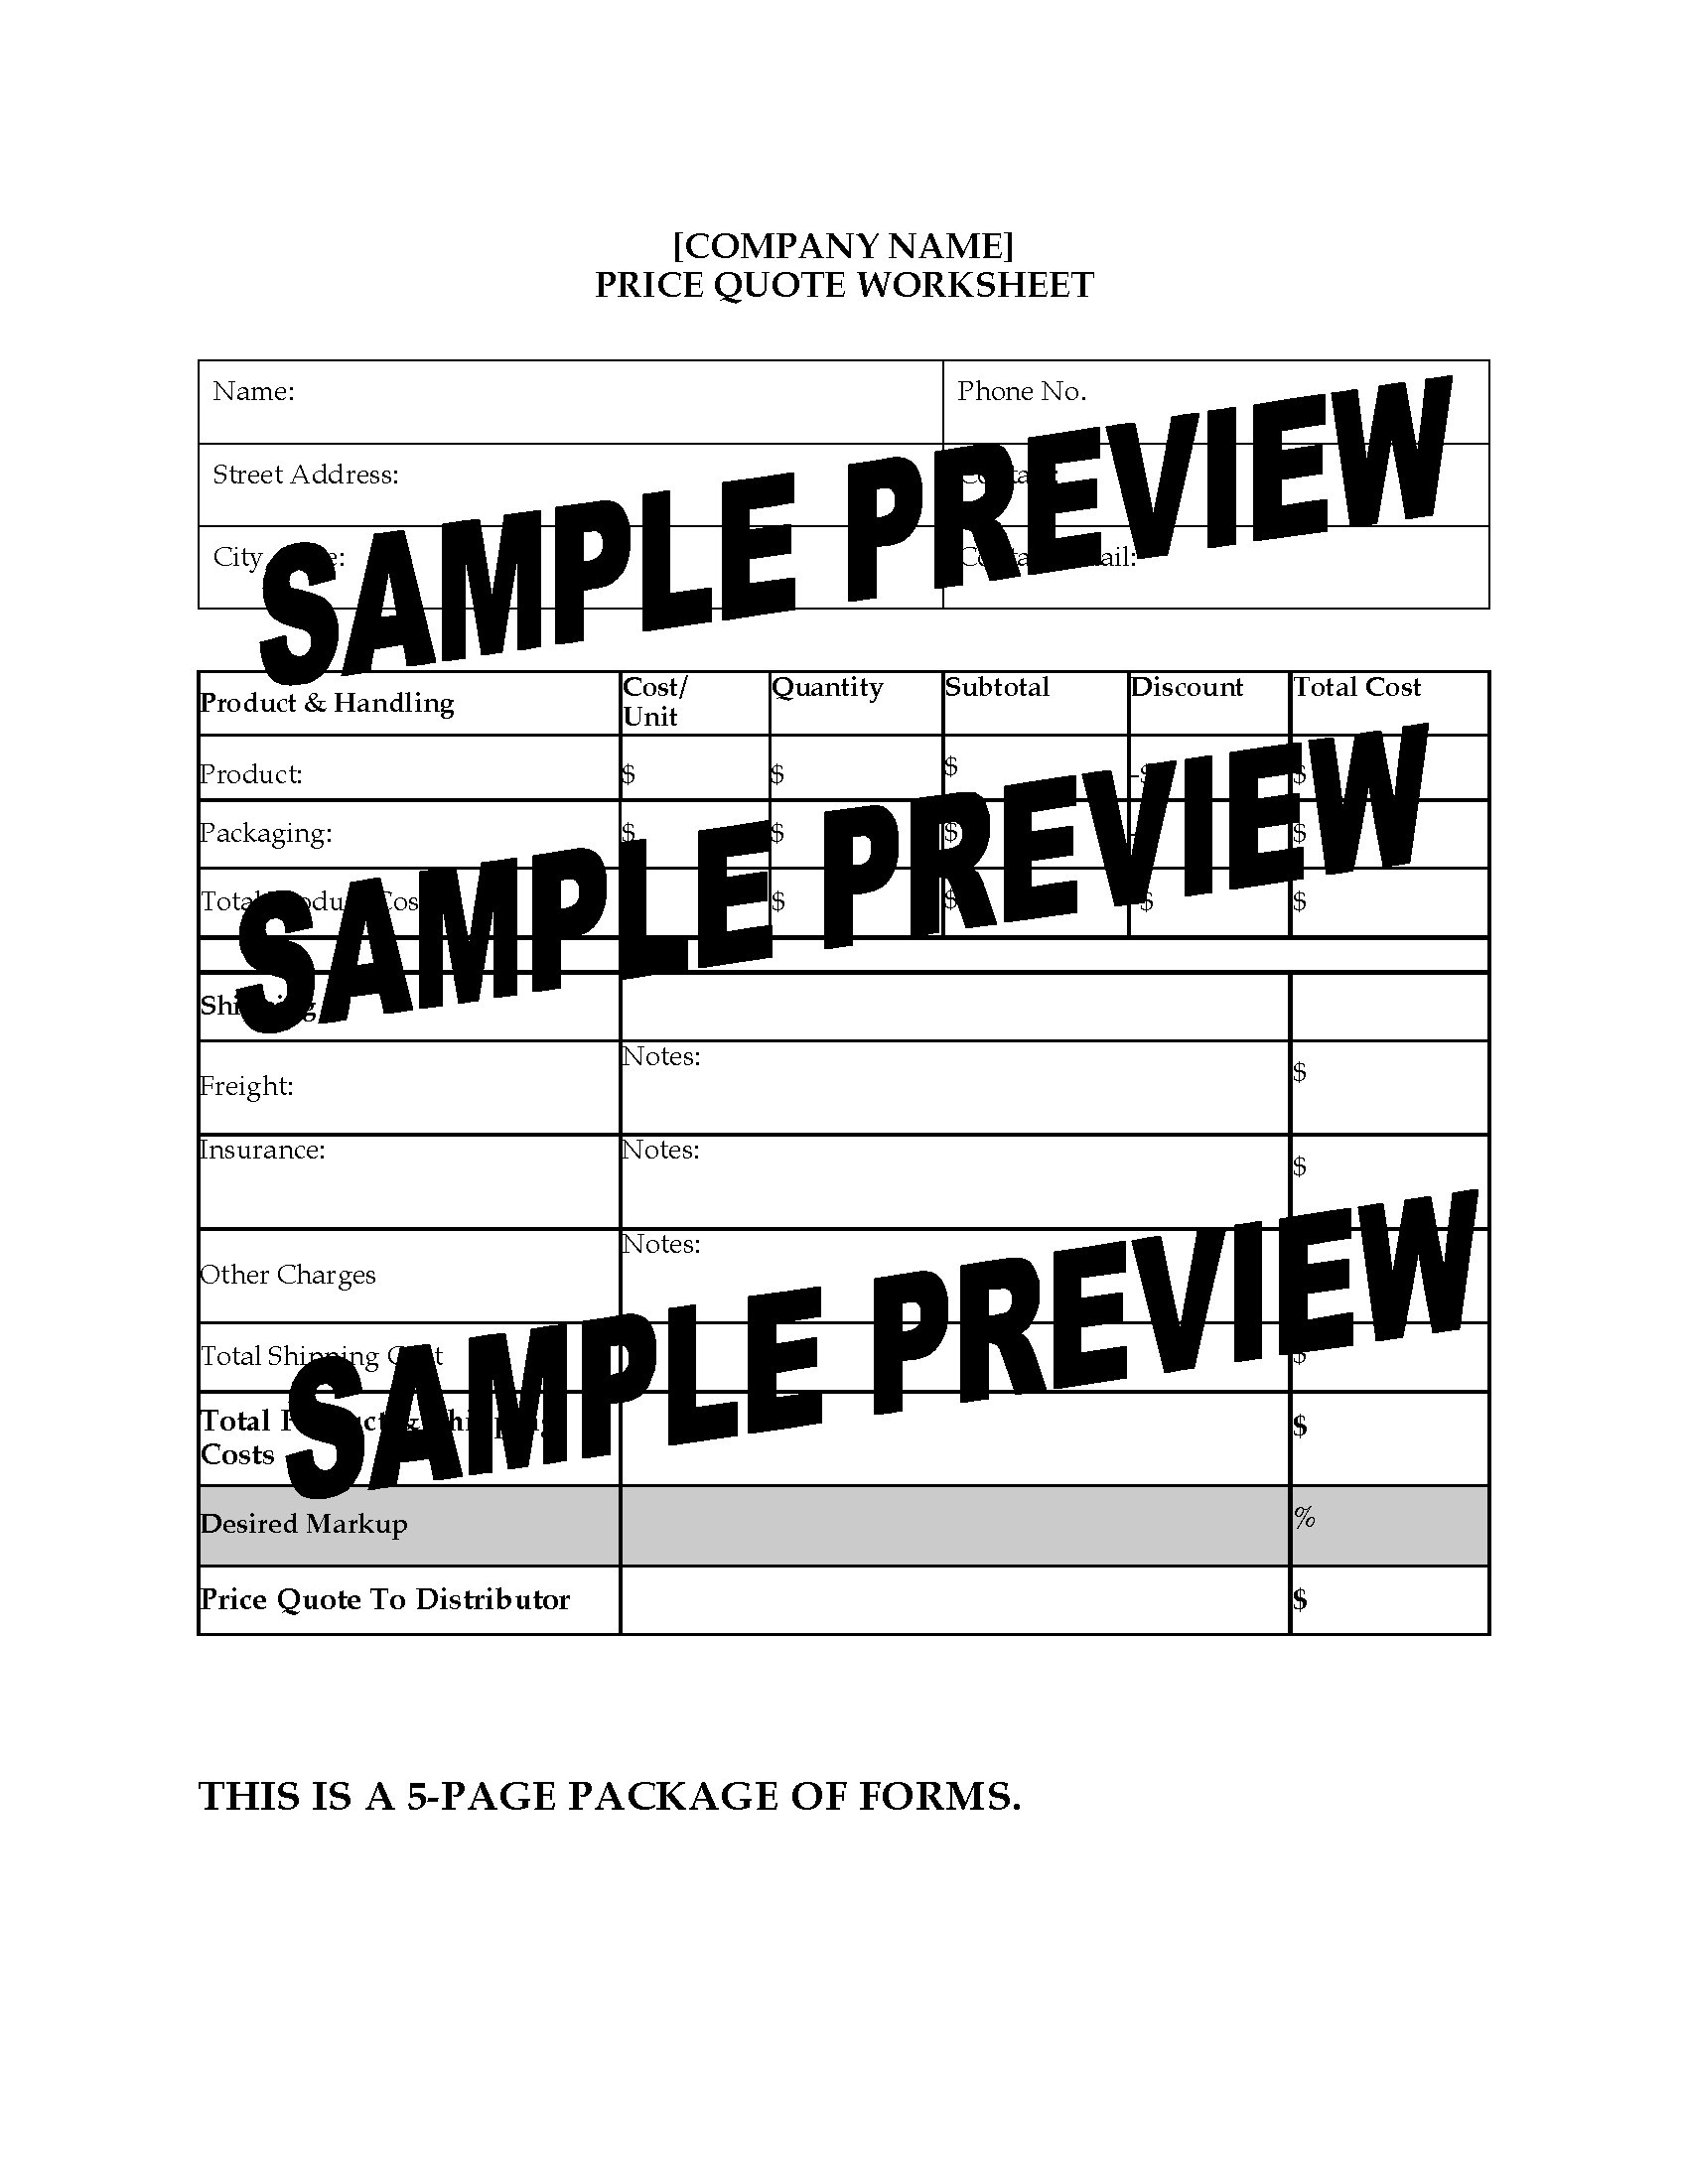 Sales Department Worksheets Package